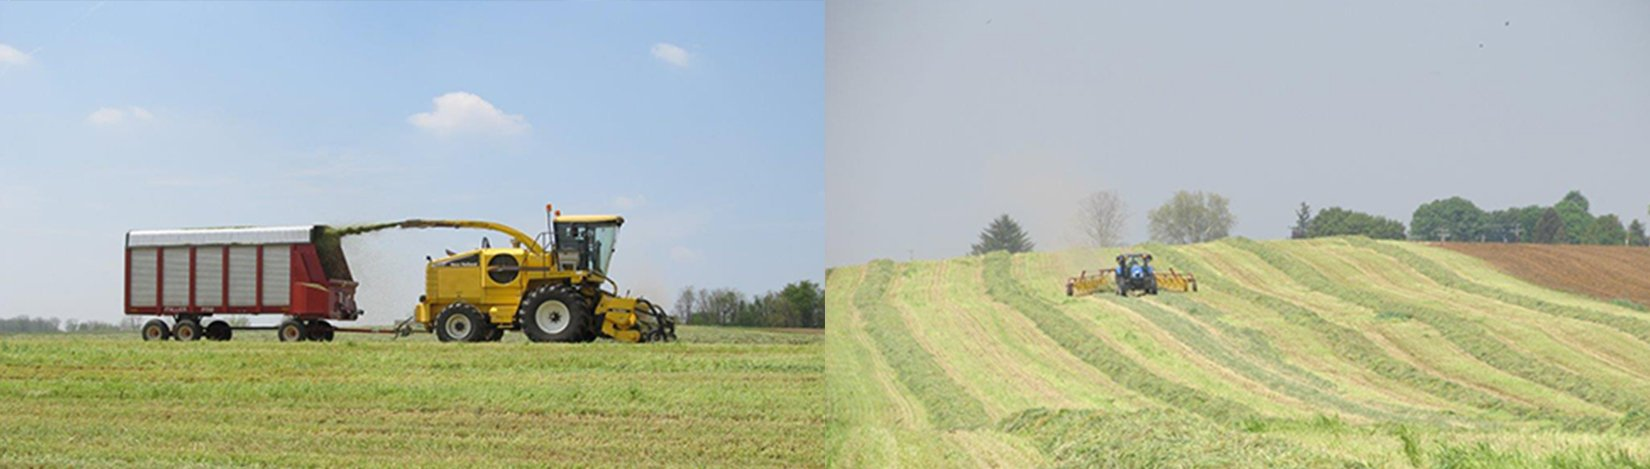 silage chopper and hay rake